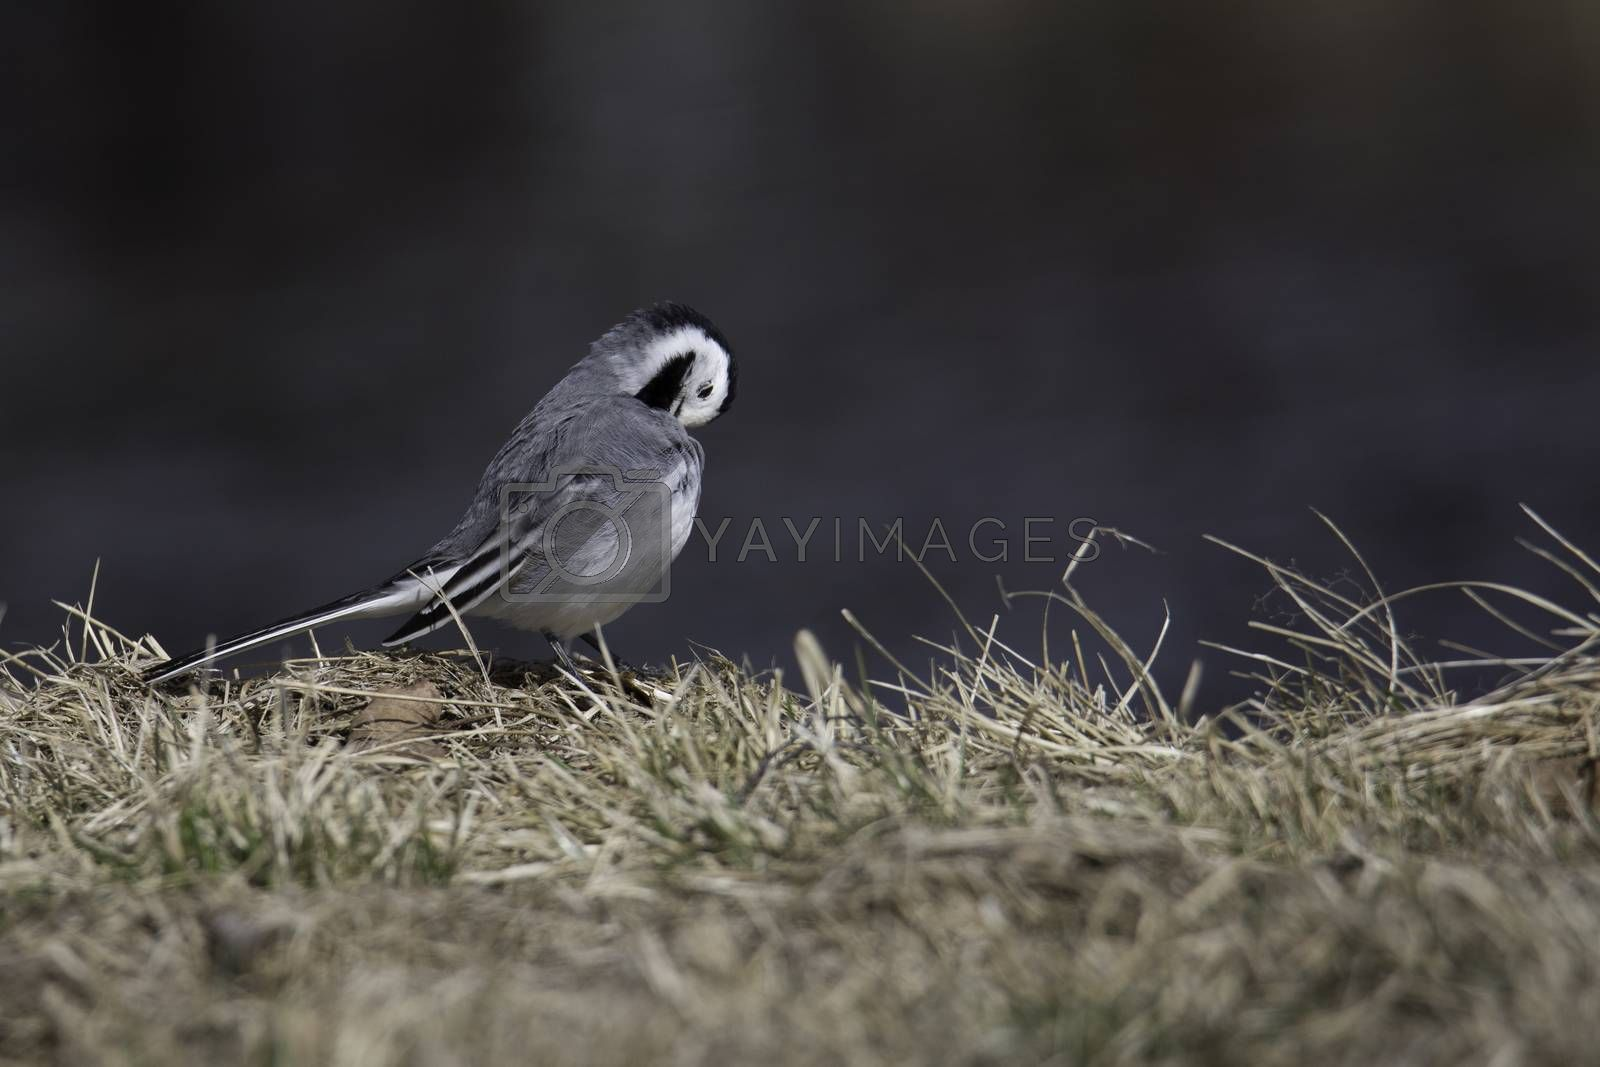 White Wagtail Cleaning Feathers in grass.